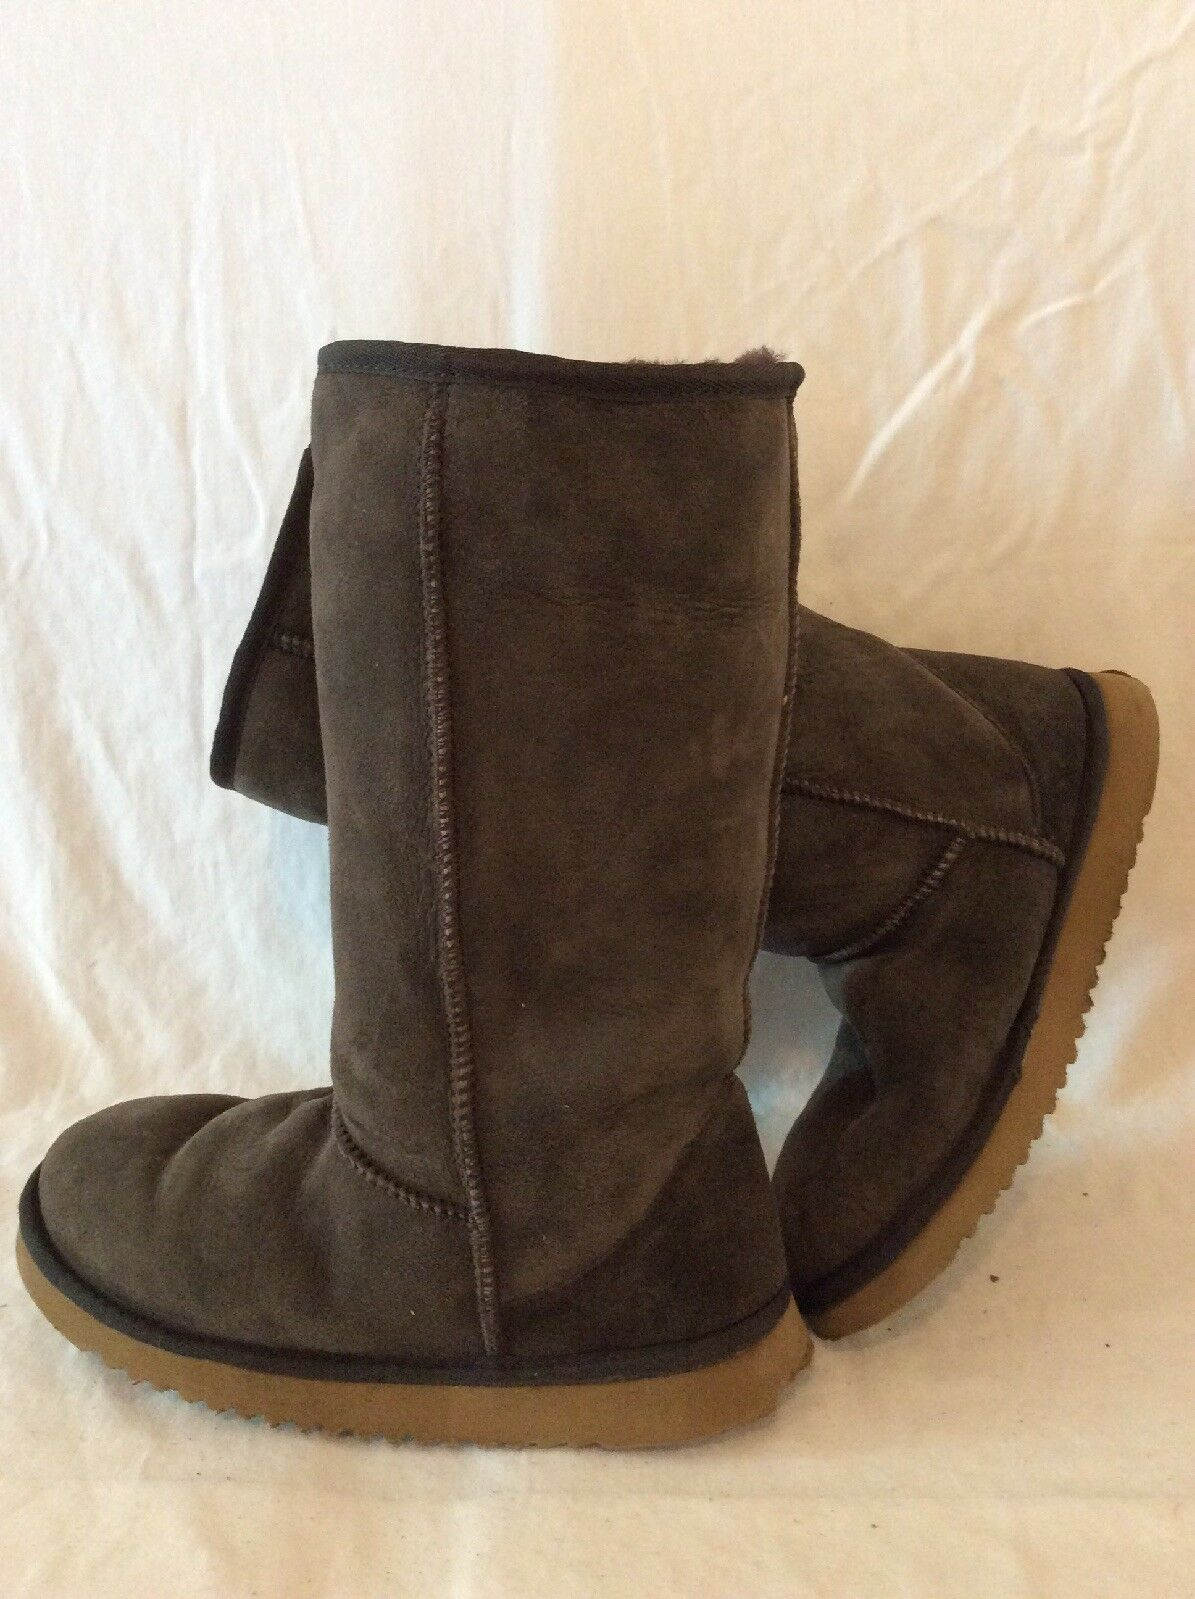 Real Sheepskin Boots Brown Mid Calf Boots Size 6